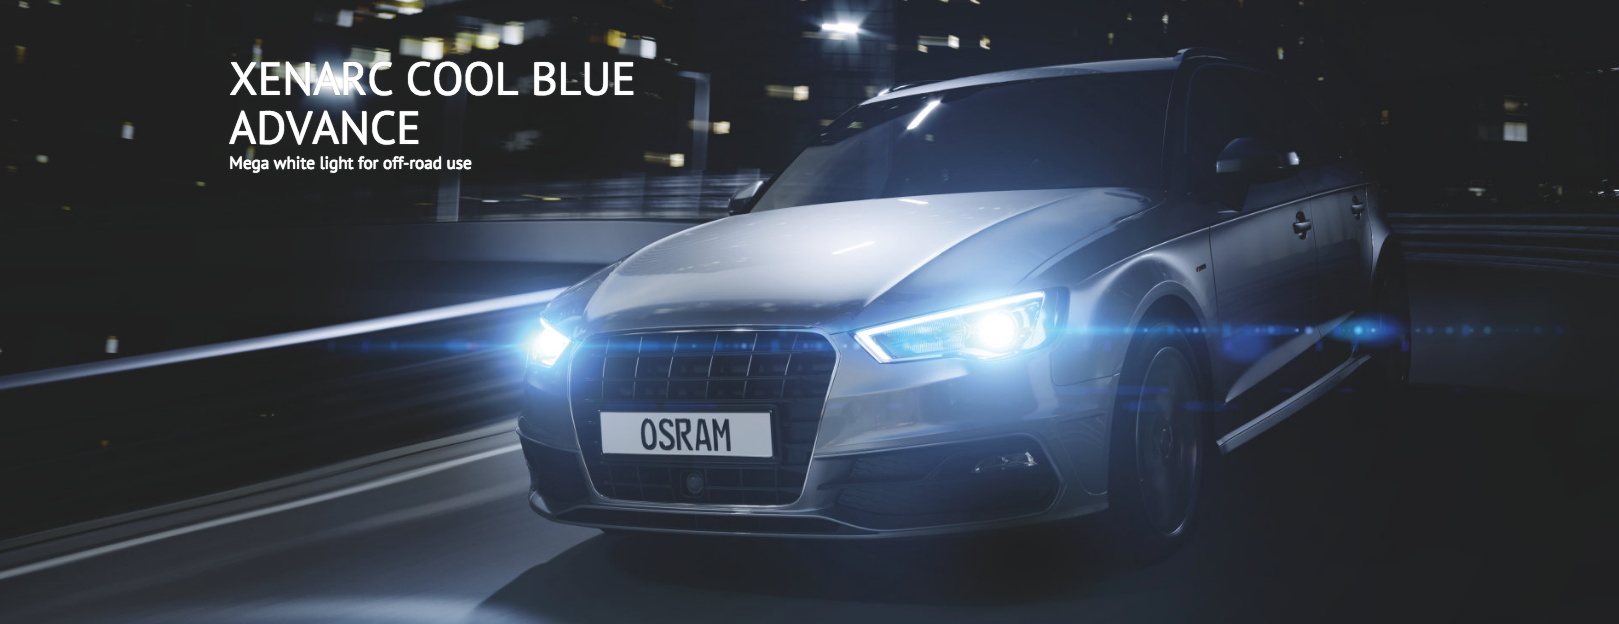 Osram Cool Blue Advance Poster